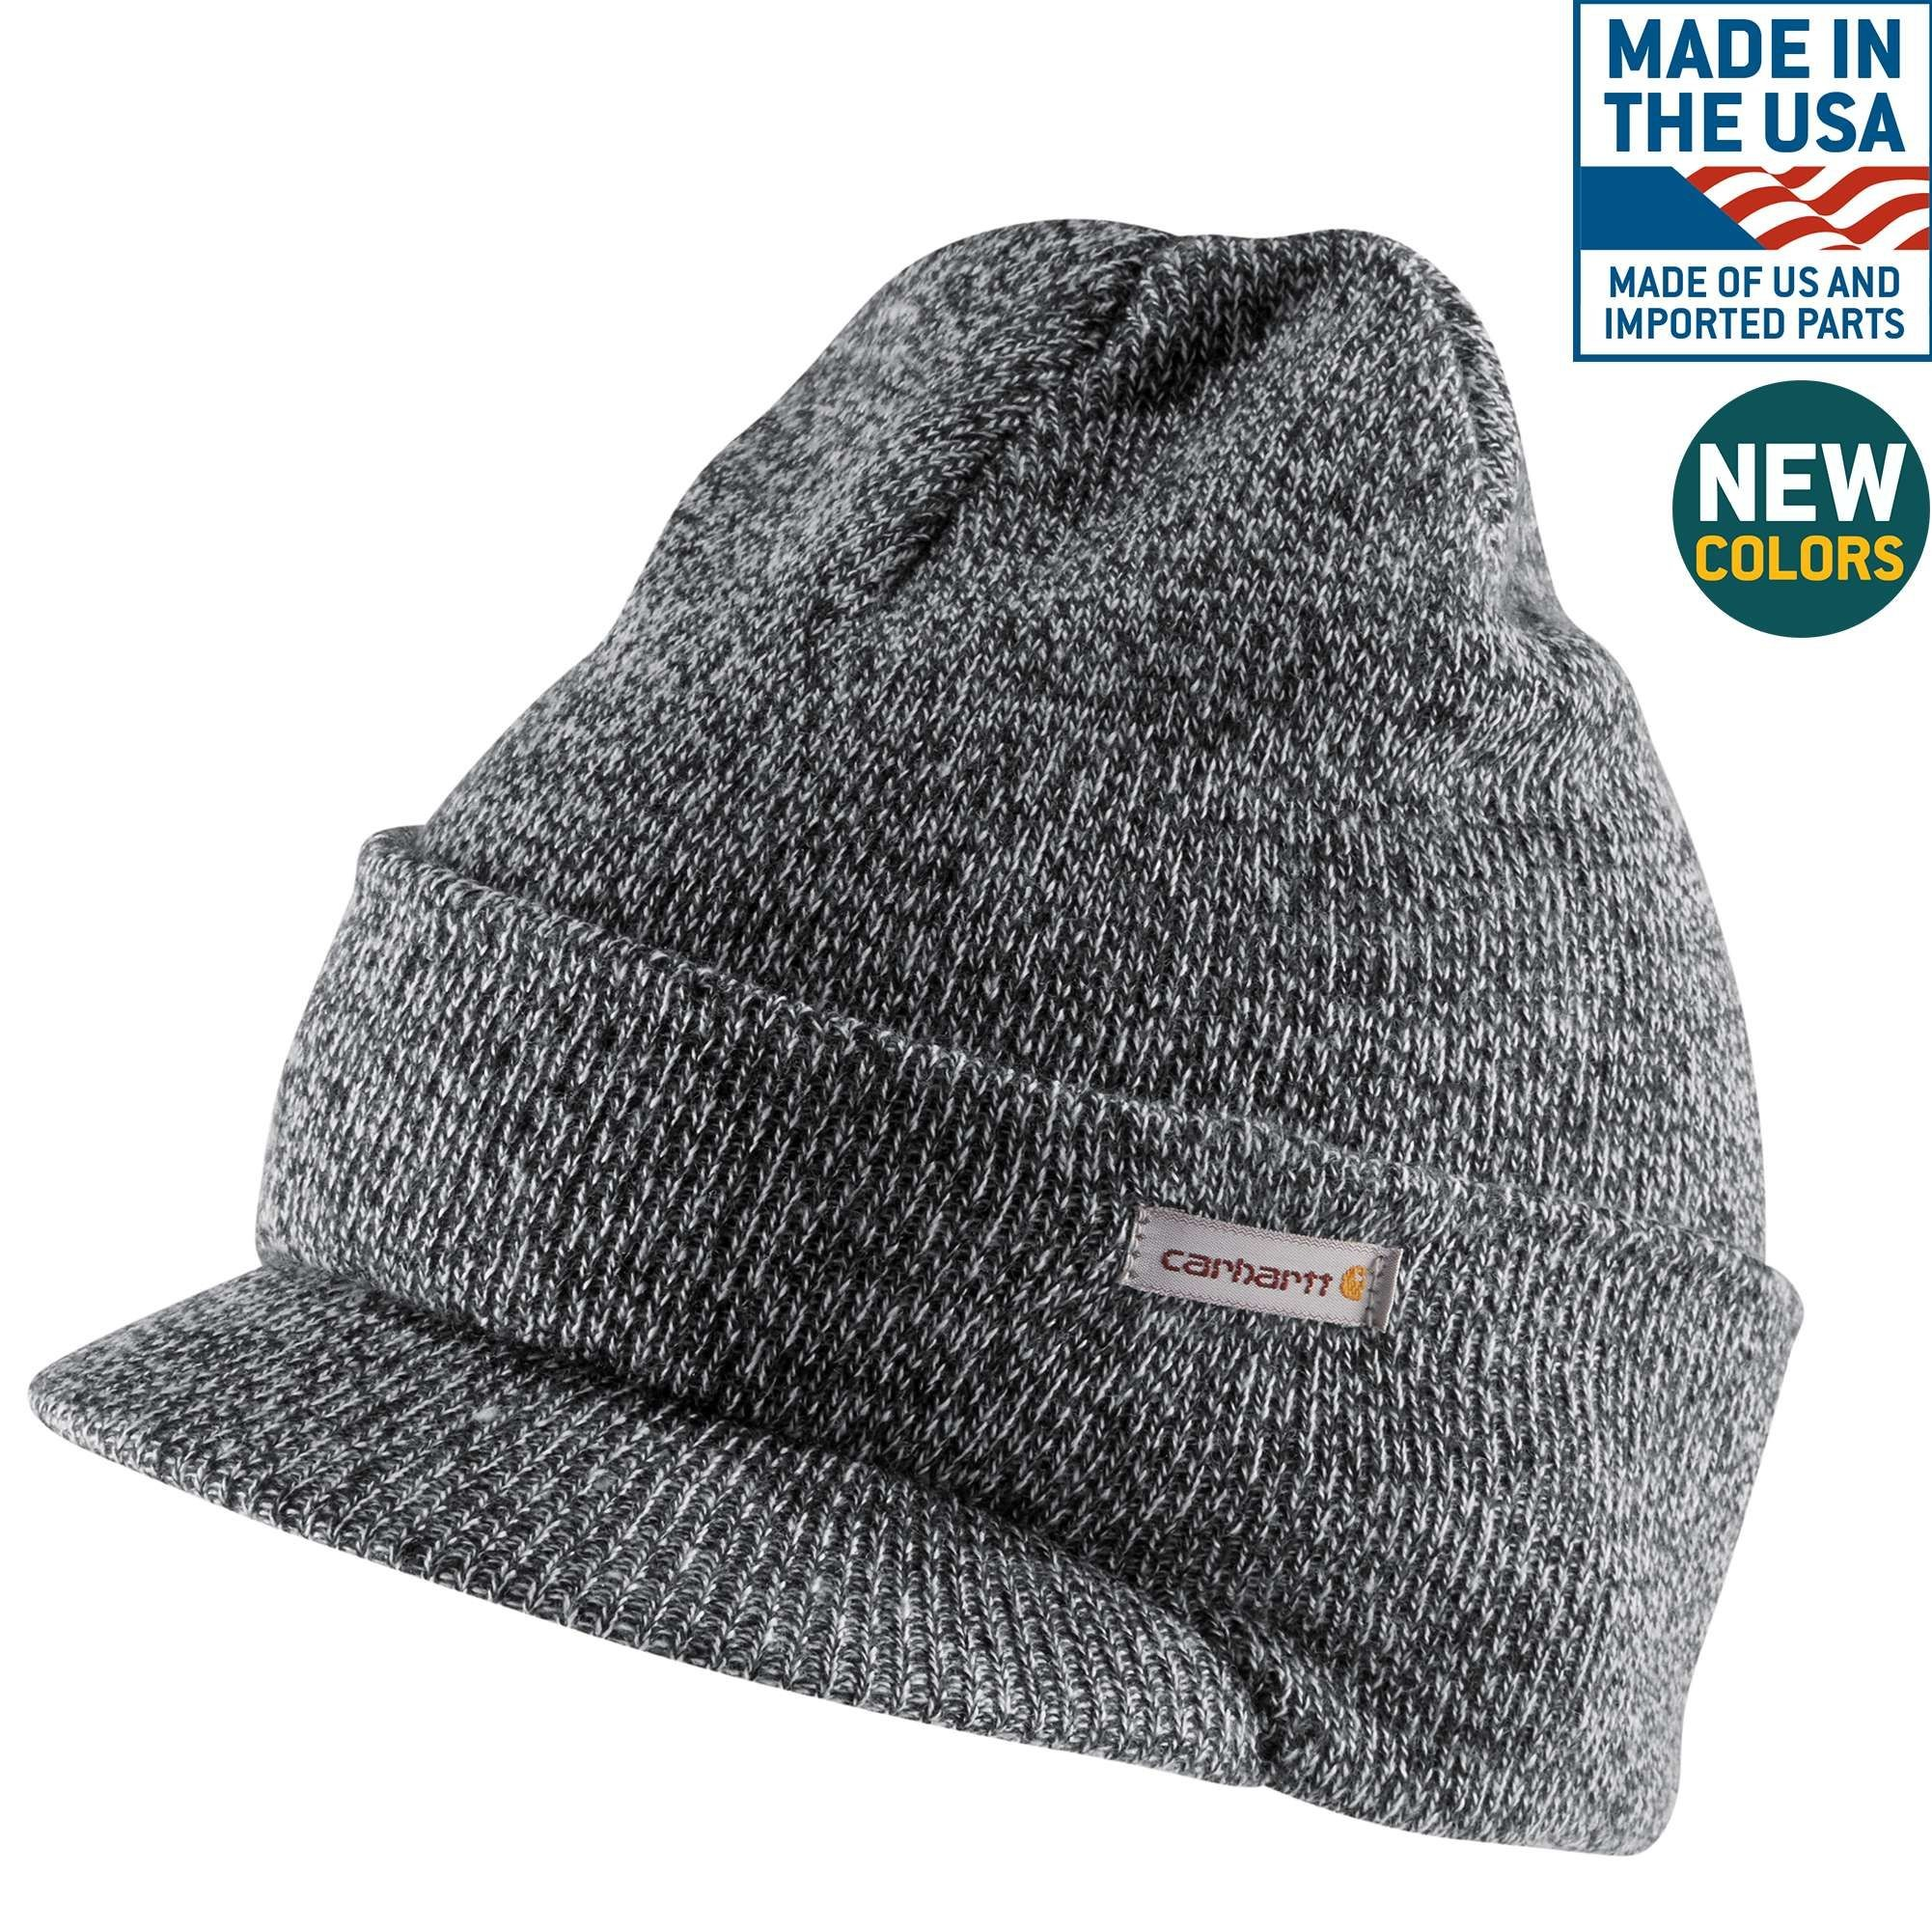 59f5f953813a6 M Knit Hat With Visor